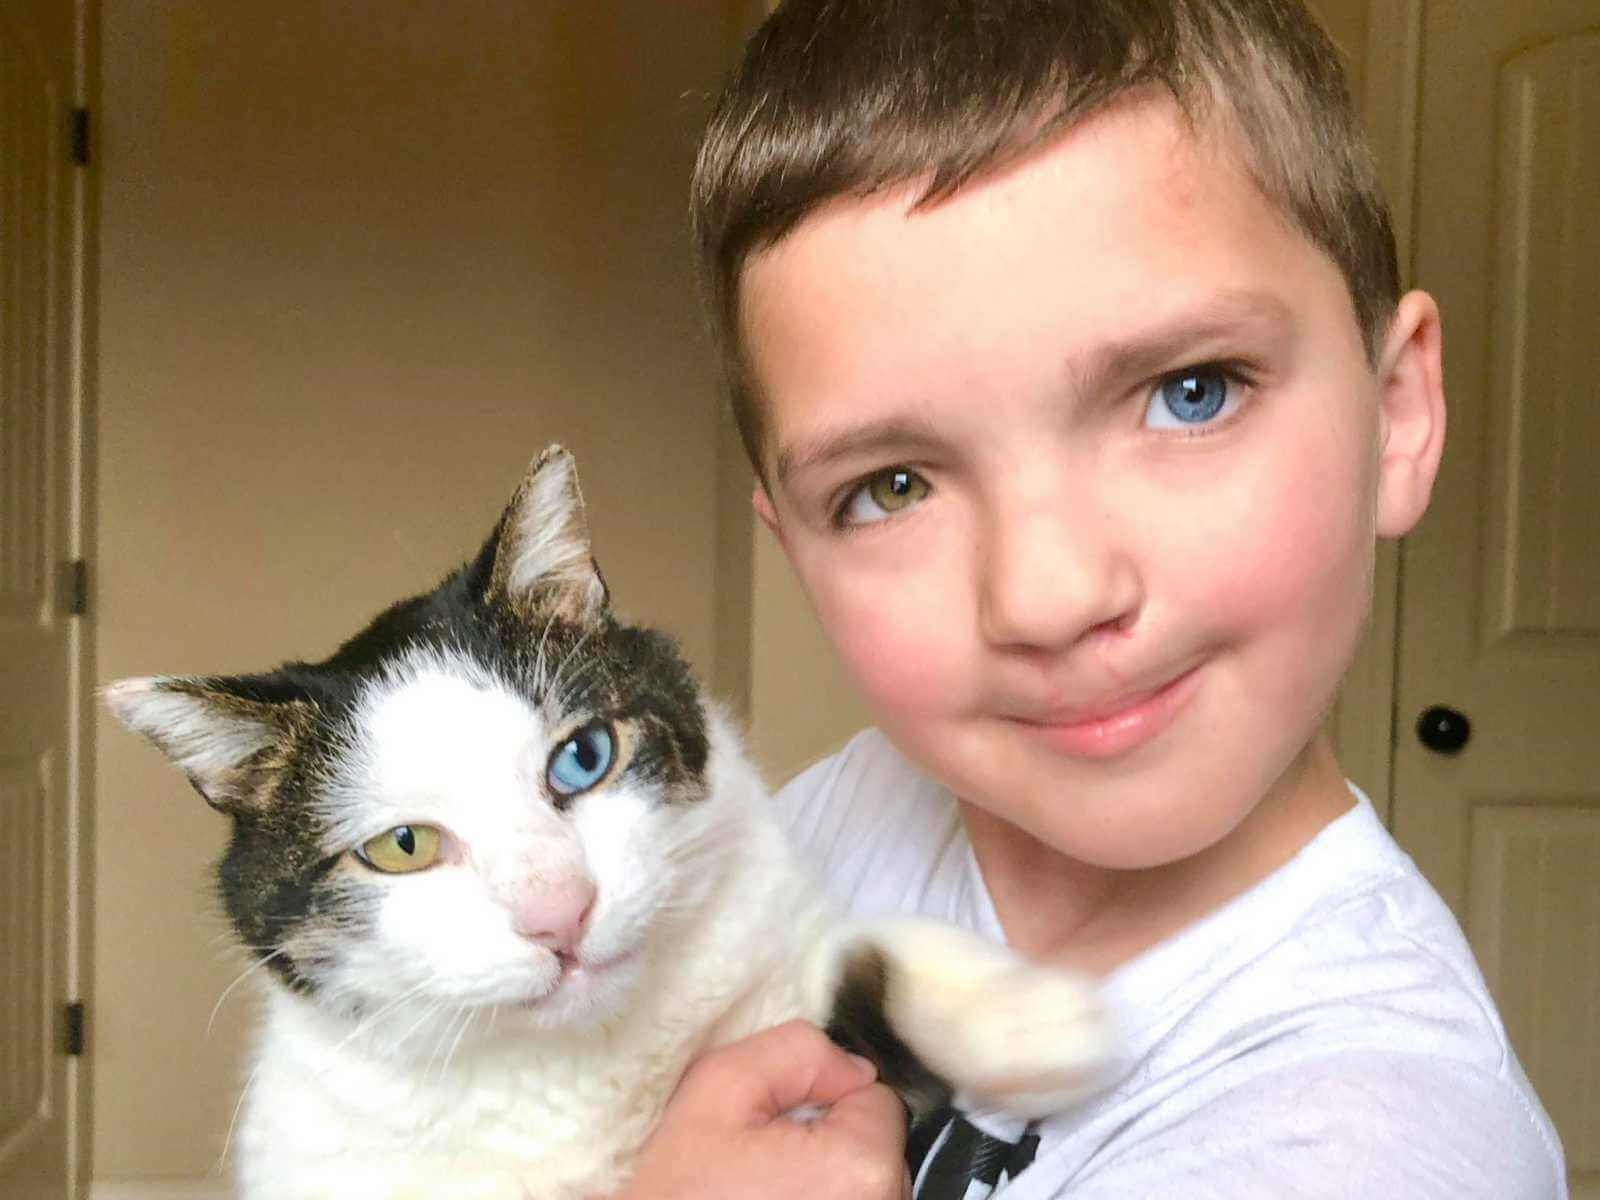 This Boy Was Bullied Because Of His Extraordinary Condition. His Life Changed When He Rescued A Cat With The Same Unique Traits.